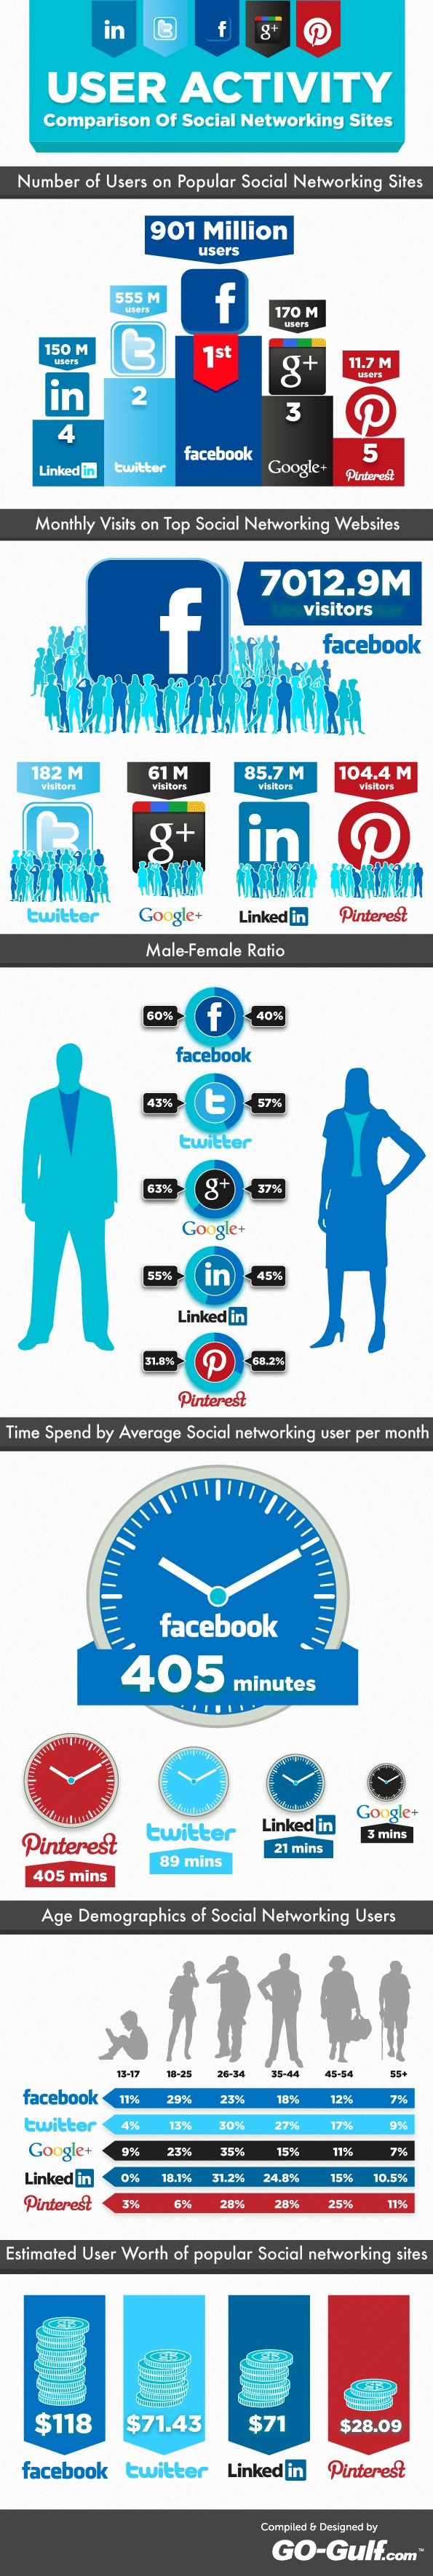 User Activity Comparison Of #Social Networking Sites:  Facebook remains on top, but others follow close behind #INFOGRAPHIC